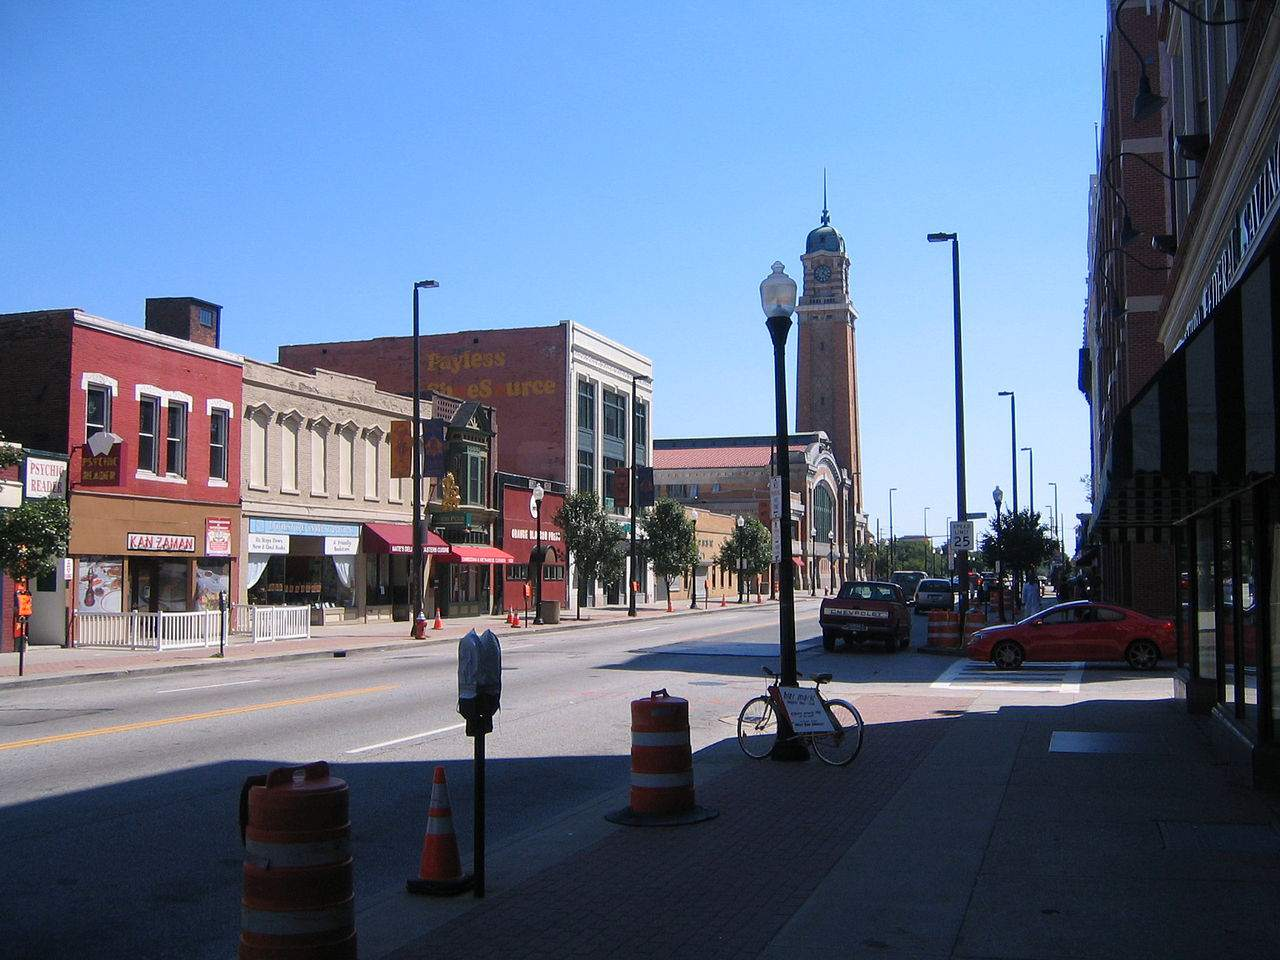 Looking south on West 25th Street in Ohio City, towards the West Side Market.